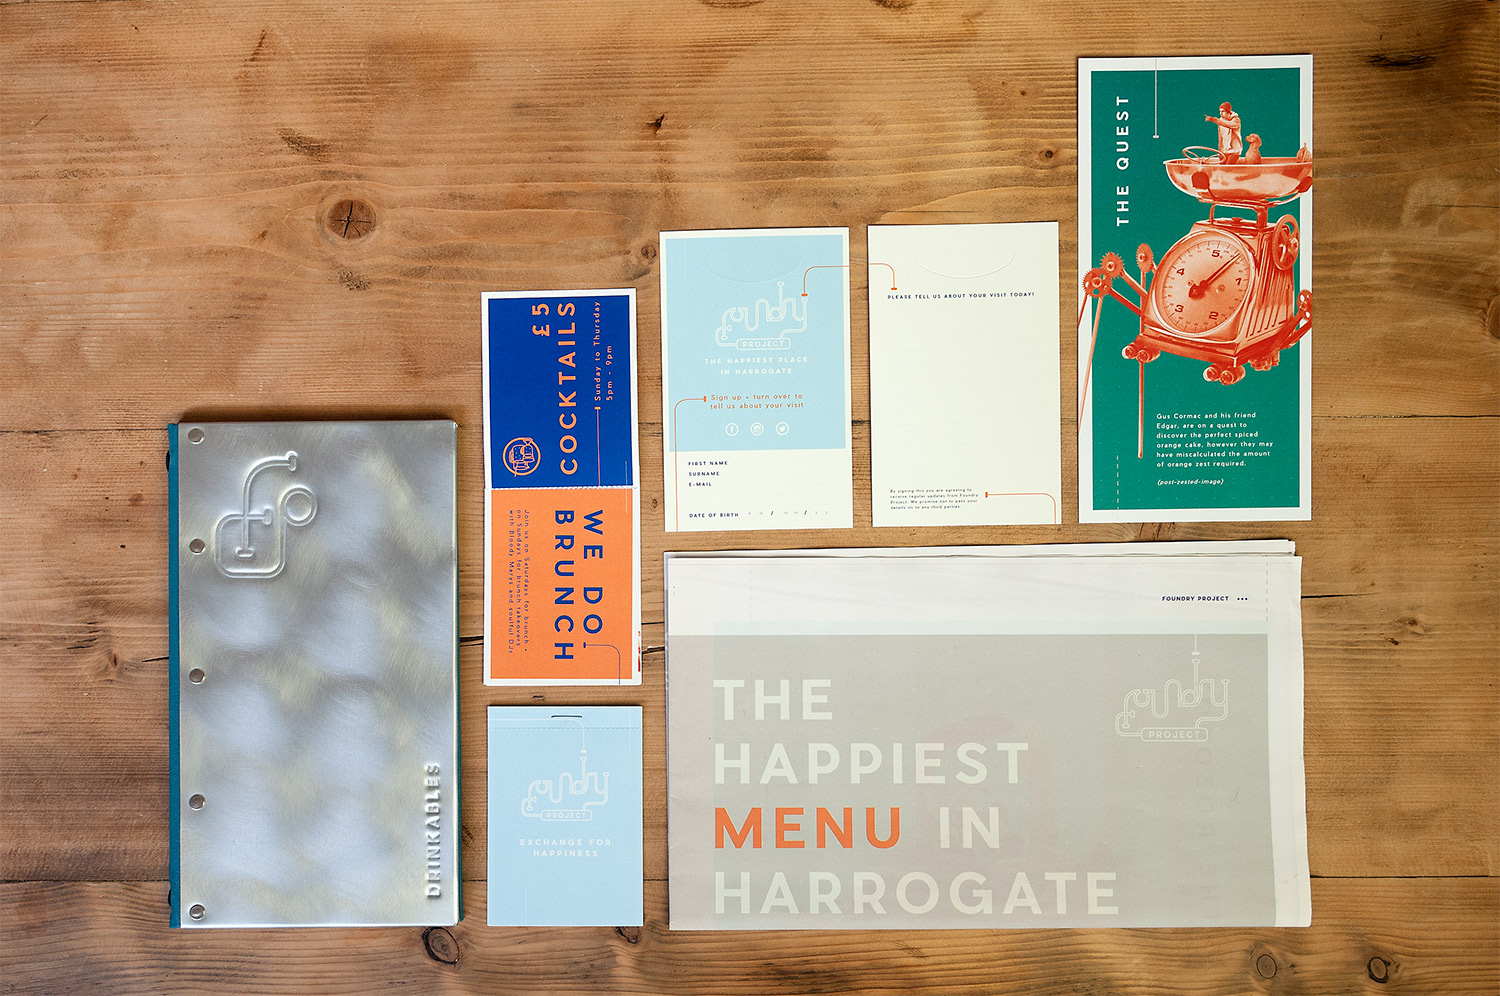 Brand design for Foundry Project by Saint Design